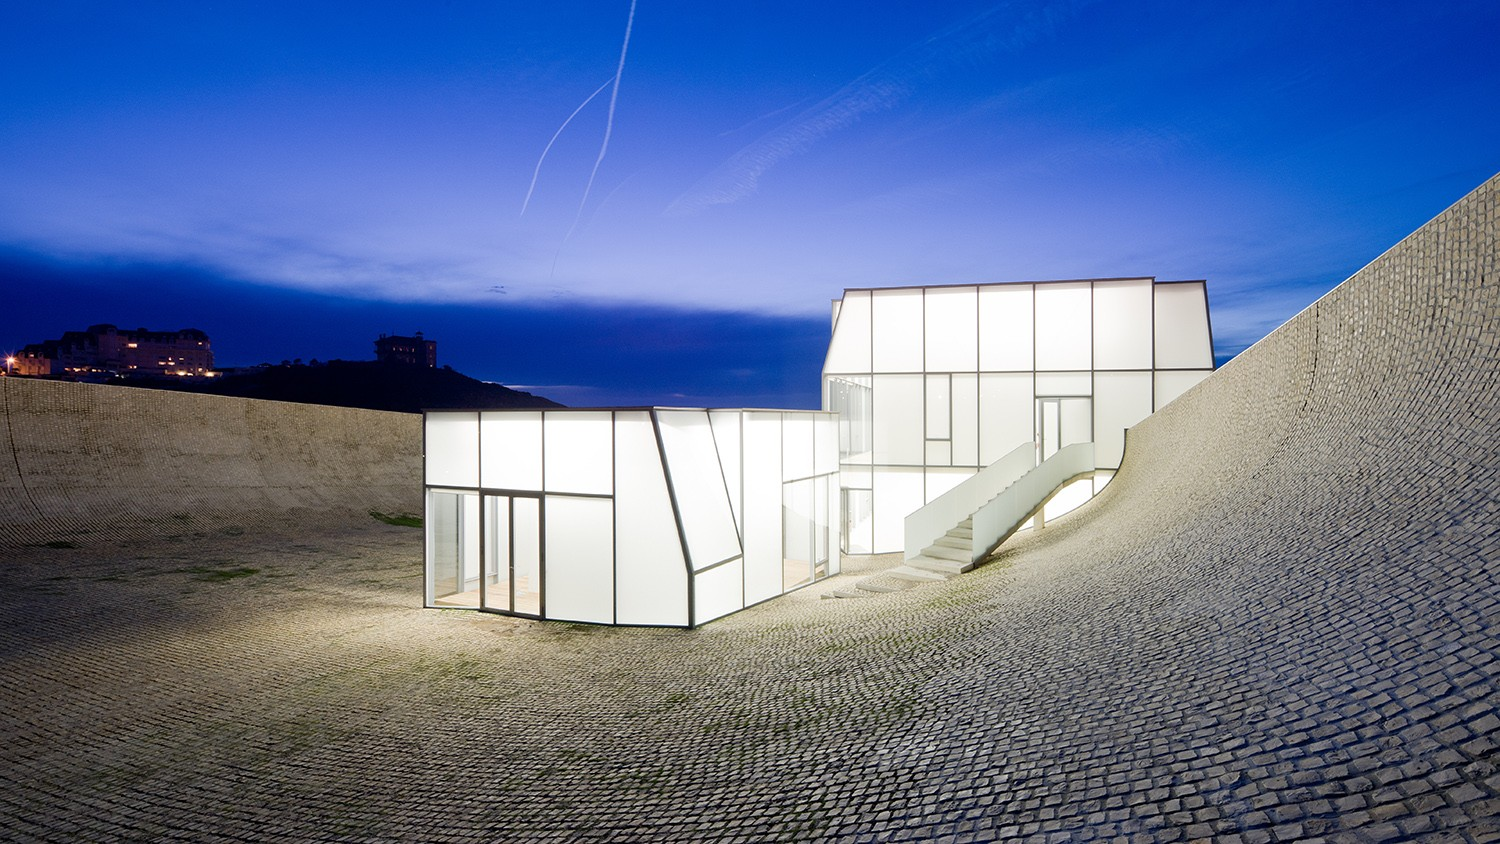 https://stevenholl.sfo2.digitaloceanspaces.com/uploads/projects/project-images/IwanBaan_Biarritz_BiarritzSHA10-127397_WH.jpg